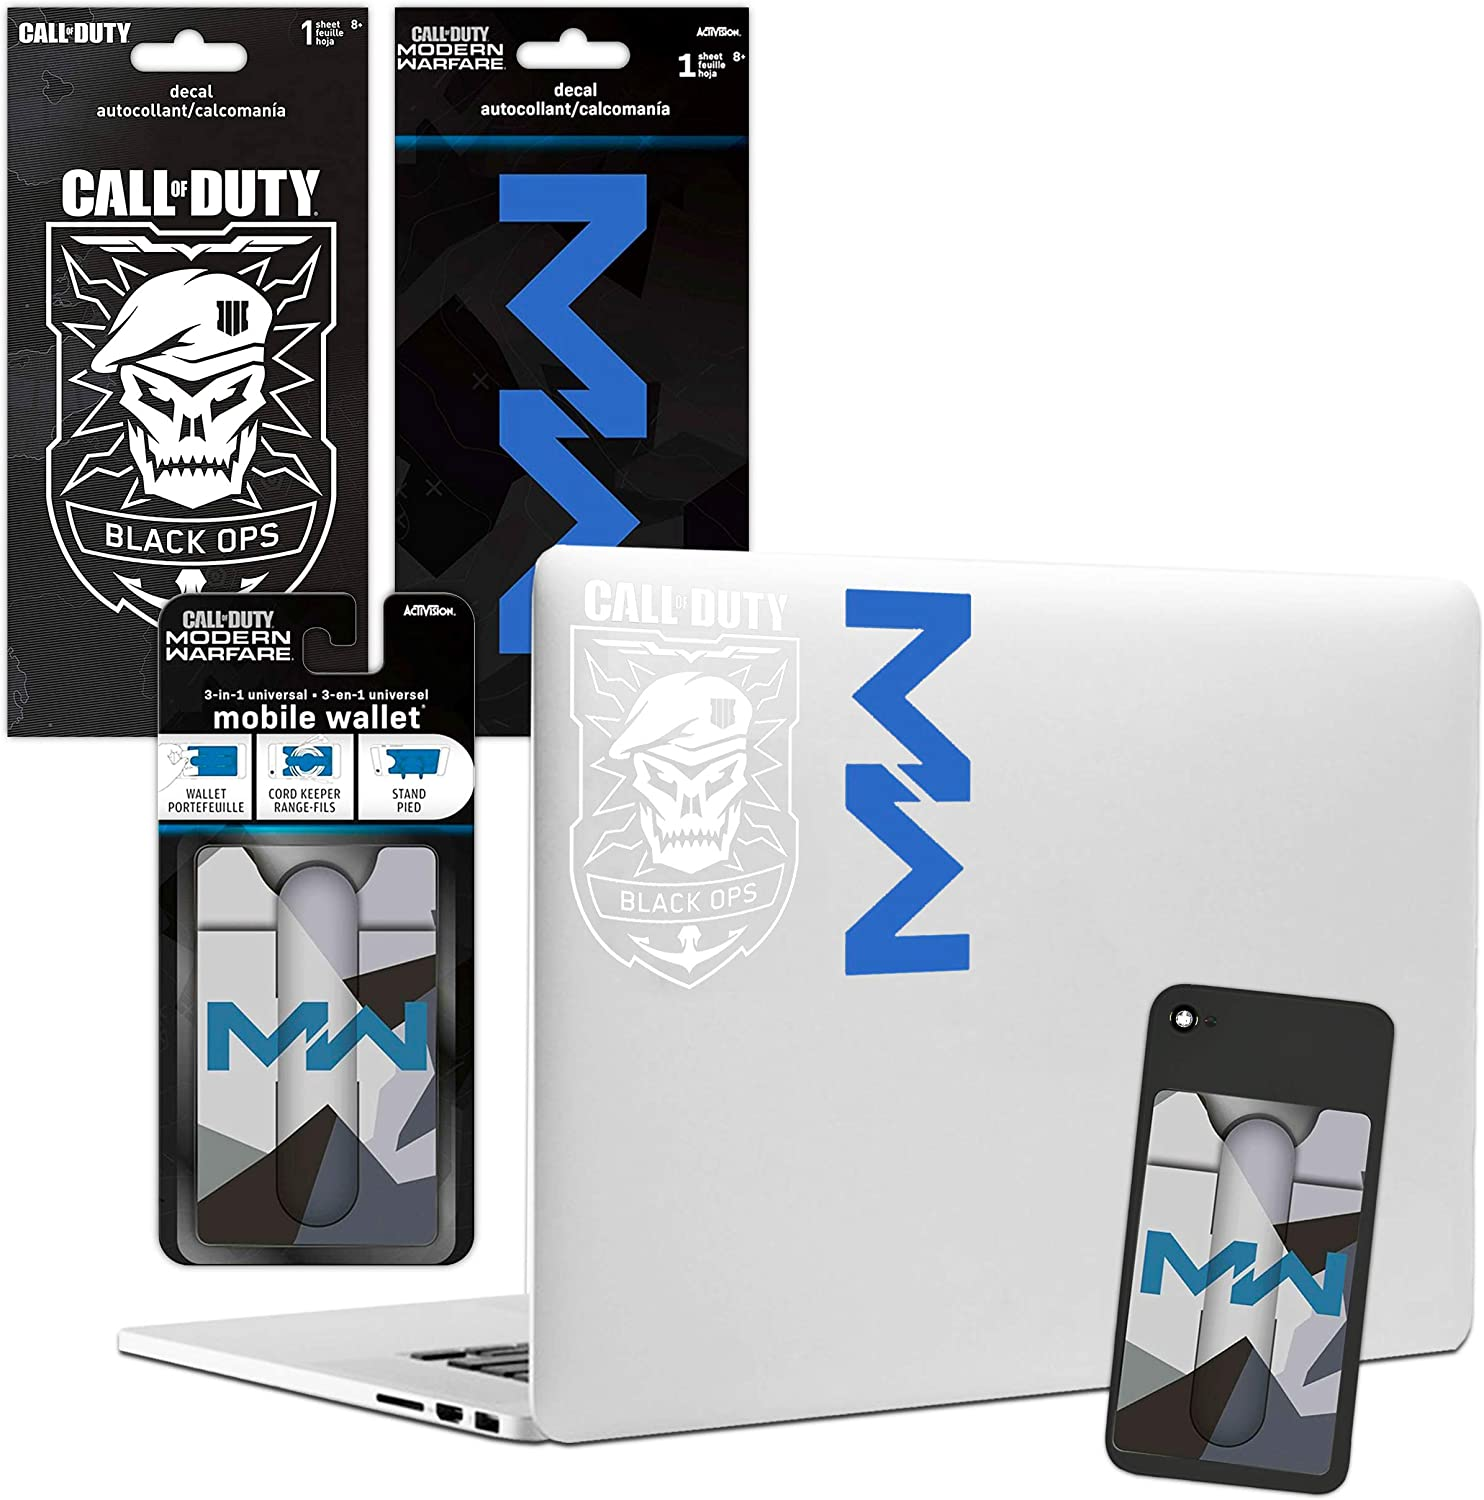 3 Pc Video Game Decal Set Call of Duty Stickers with Call of Duty Wallet for Boys Girls Call of Duty Room Decor Bundle Video Game Party Supplies